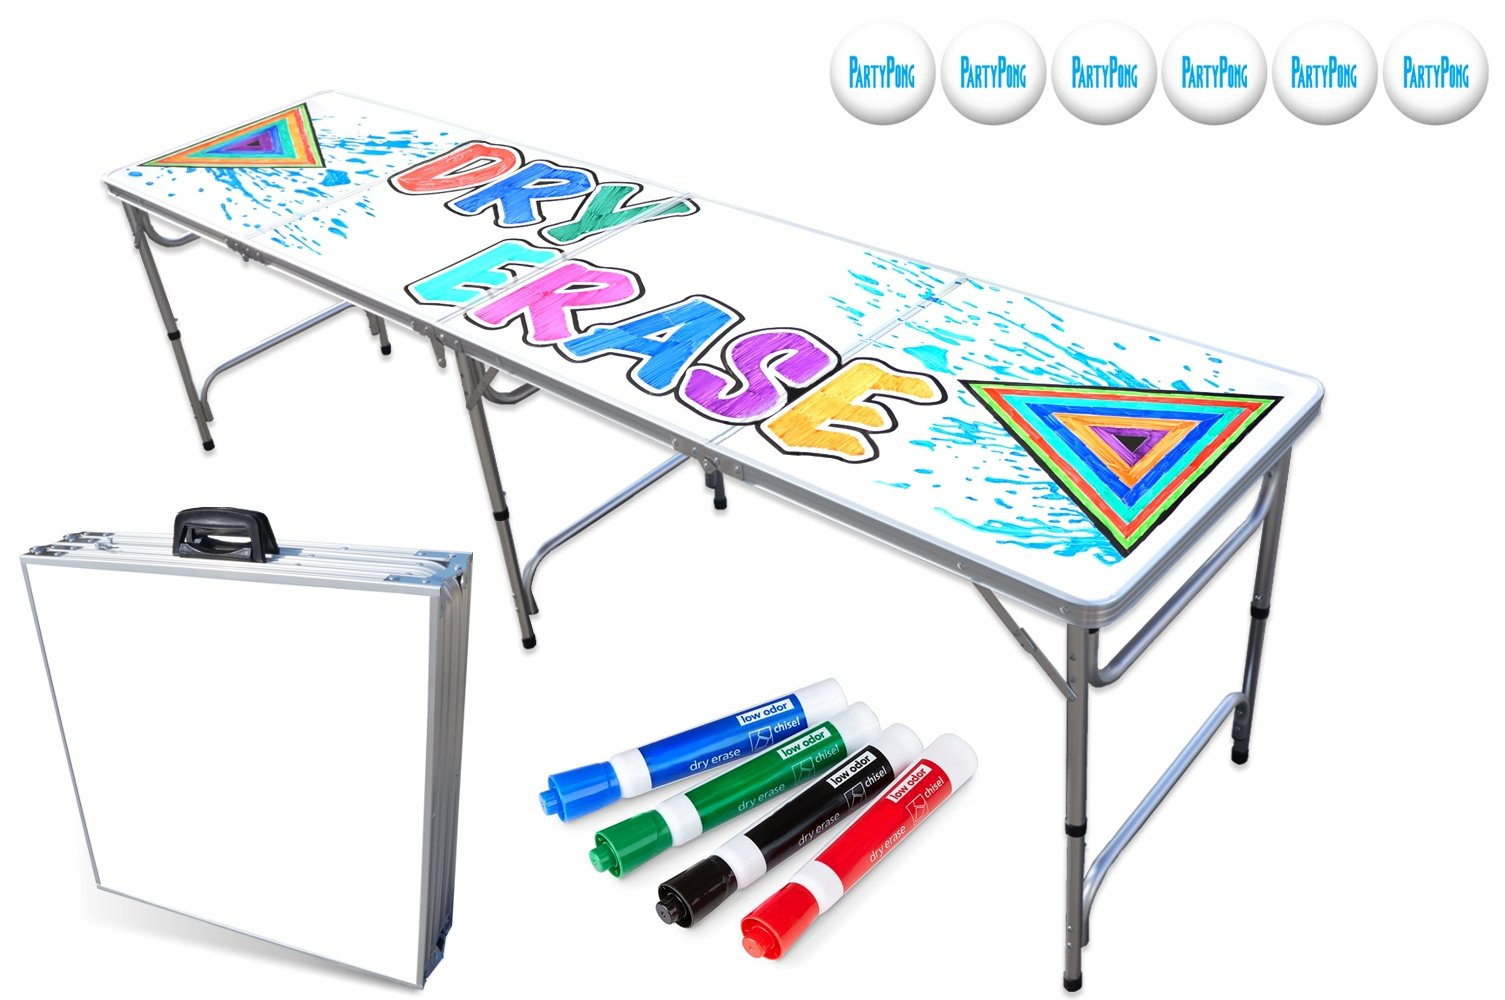 PartyPongTables.com 8-Foot Beer Pong Table - Dry Erase Surface by PartyPongTables.com